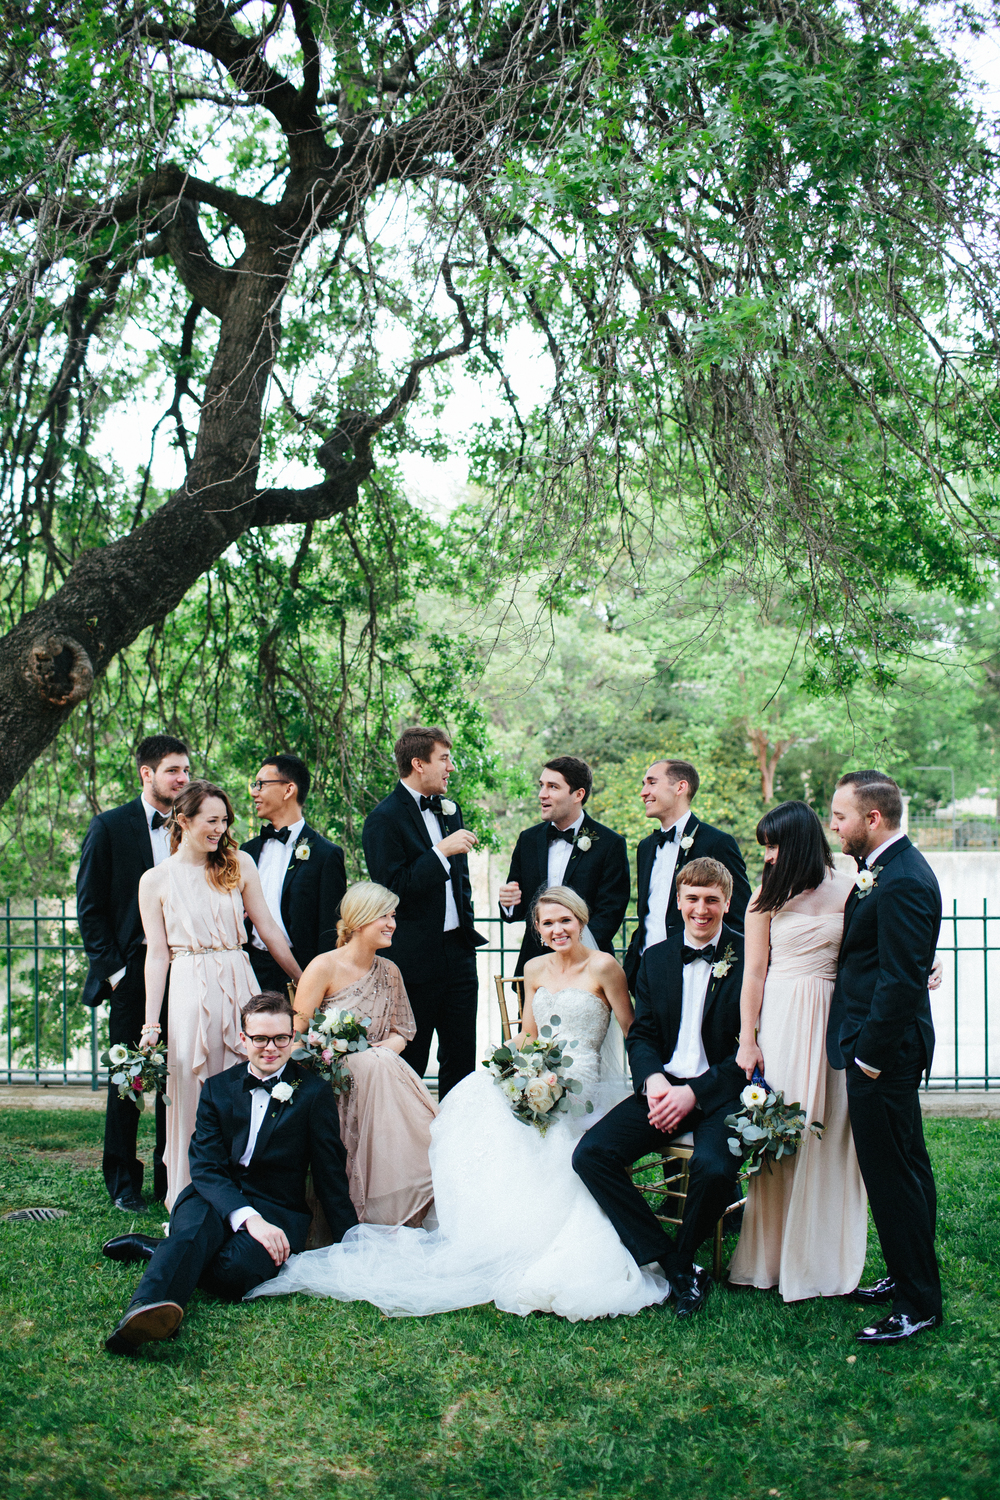 Paige-Newton-Wedding_Photography-Wedding-Party-Classy-Guenther-House.jpg